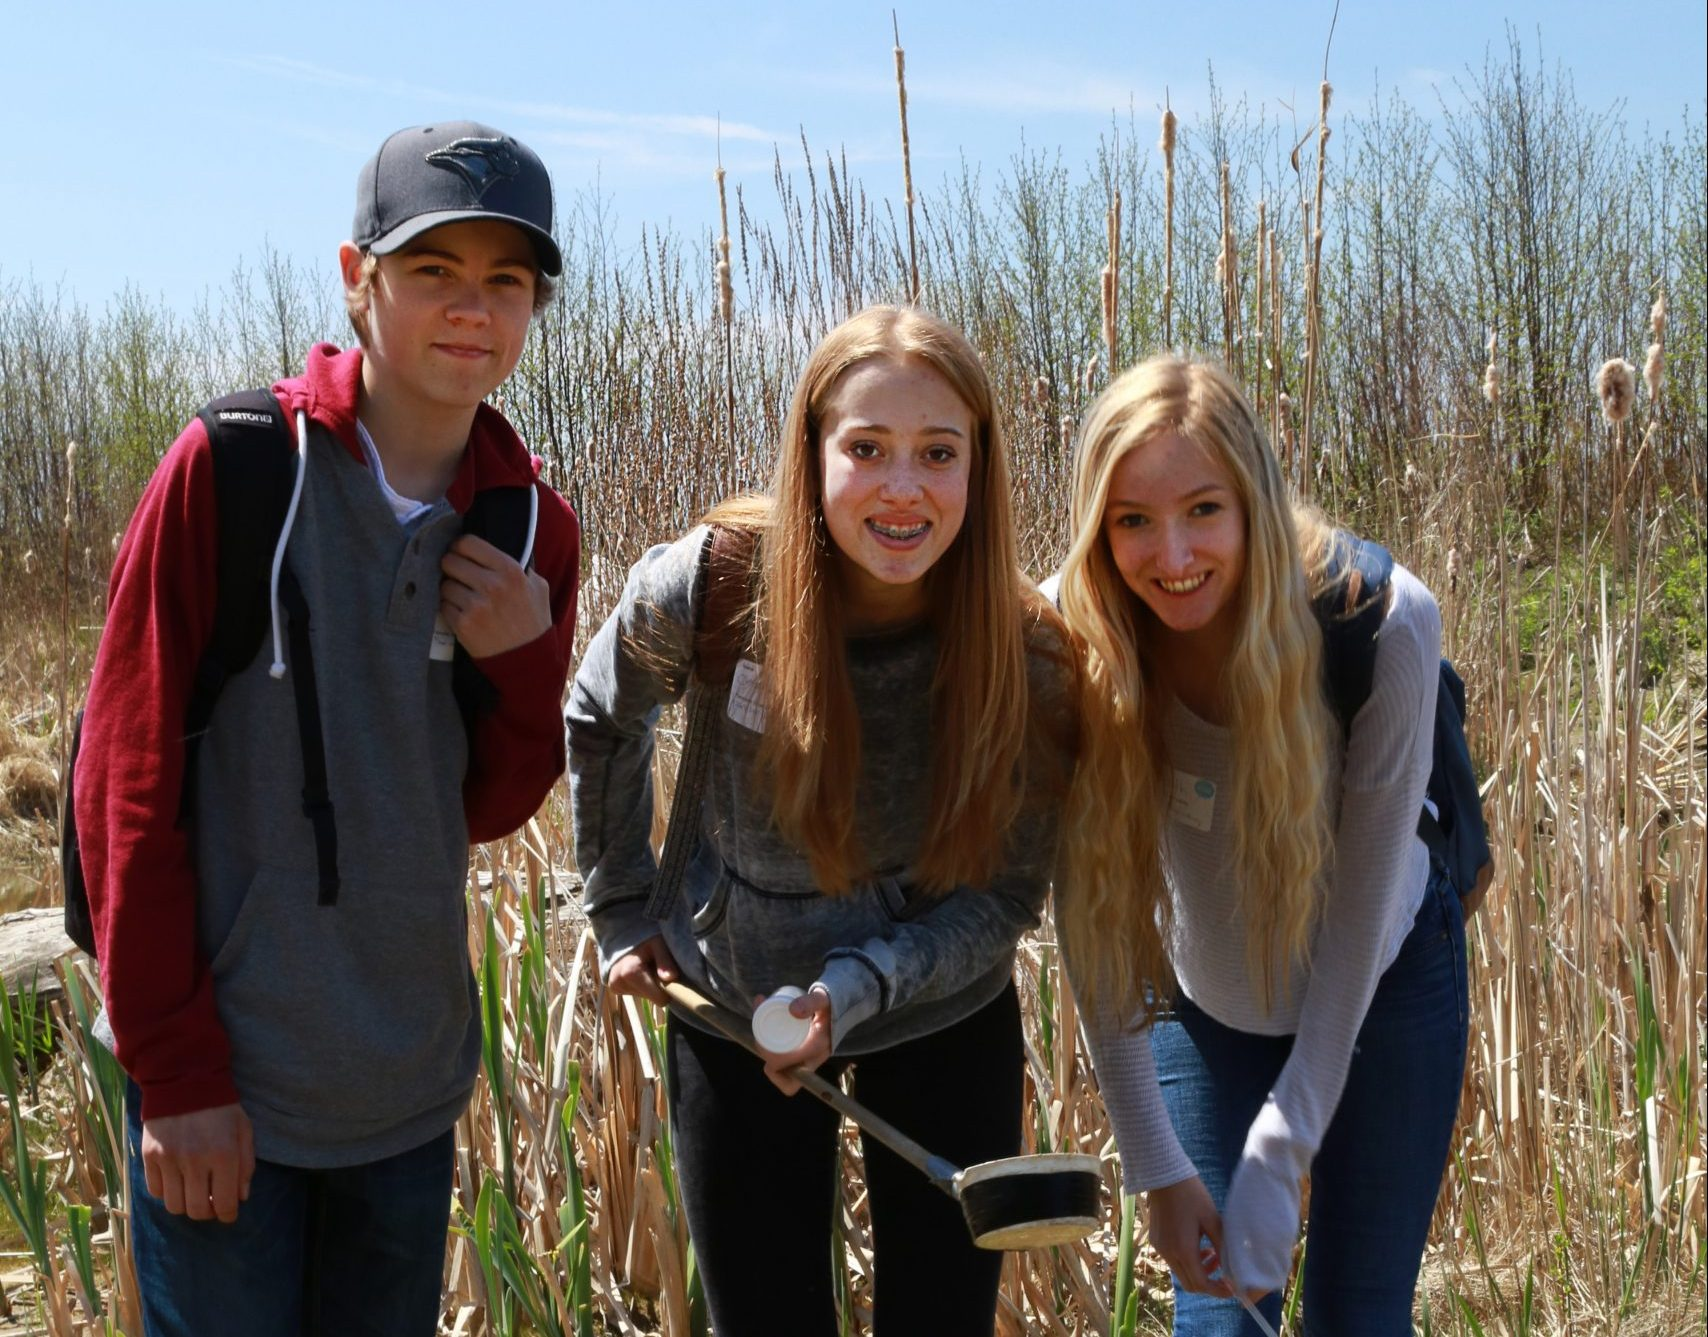 LIT campers at Tommy Thompson Park